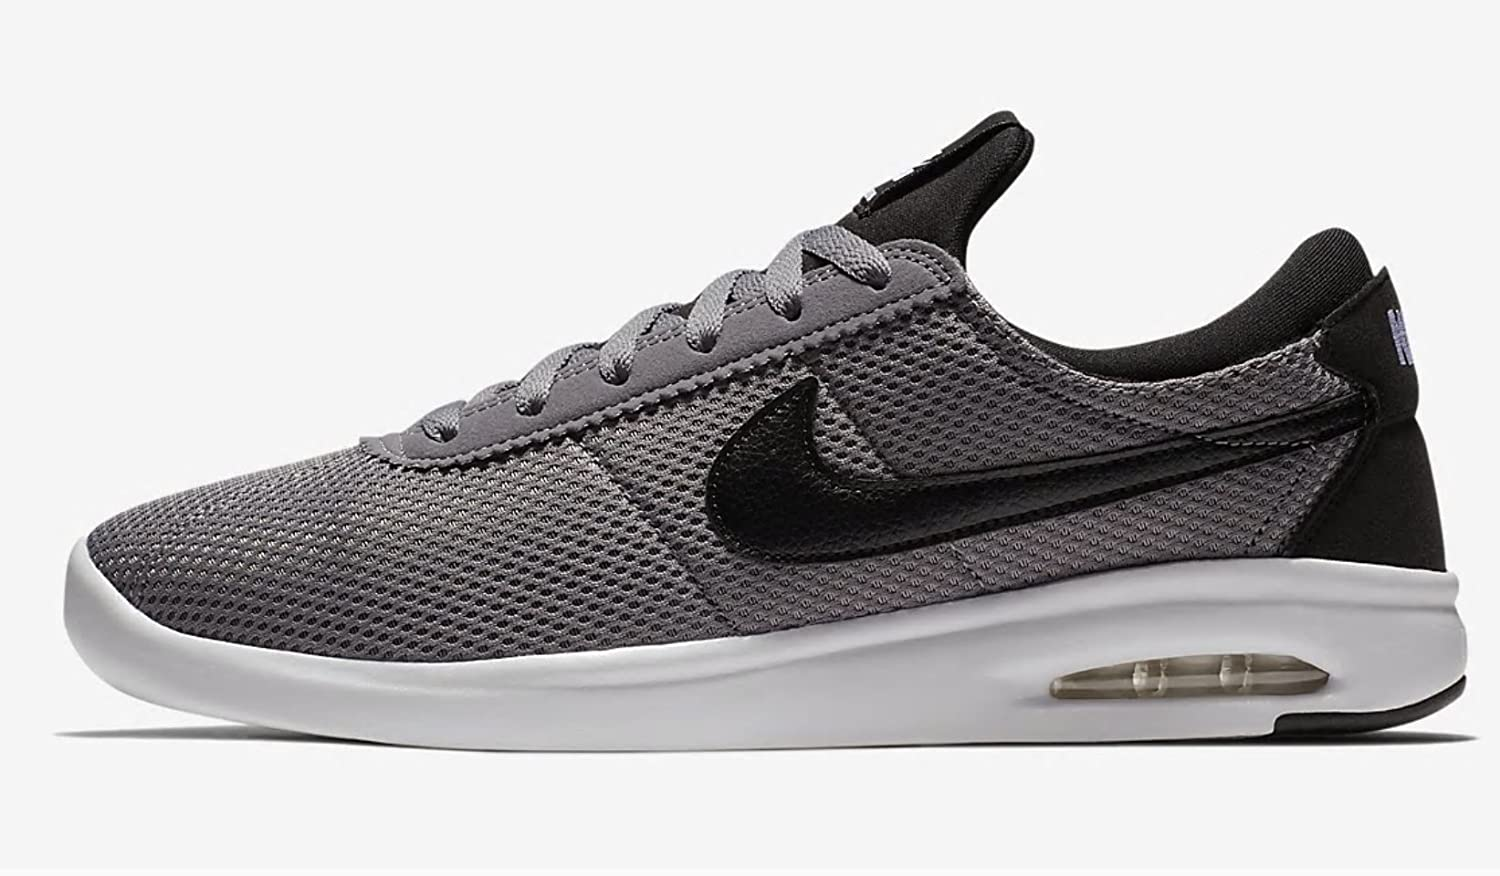 NIKE Men's SB Air Max Bruin Vapor Skate Shoe 11 D(M) US|Gunsmoke/Black-black-white